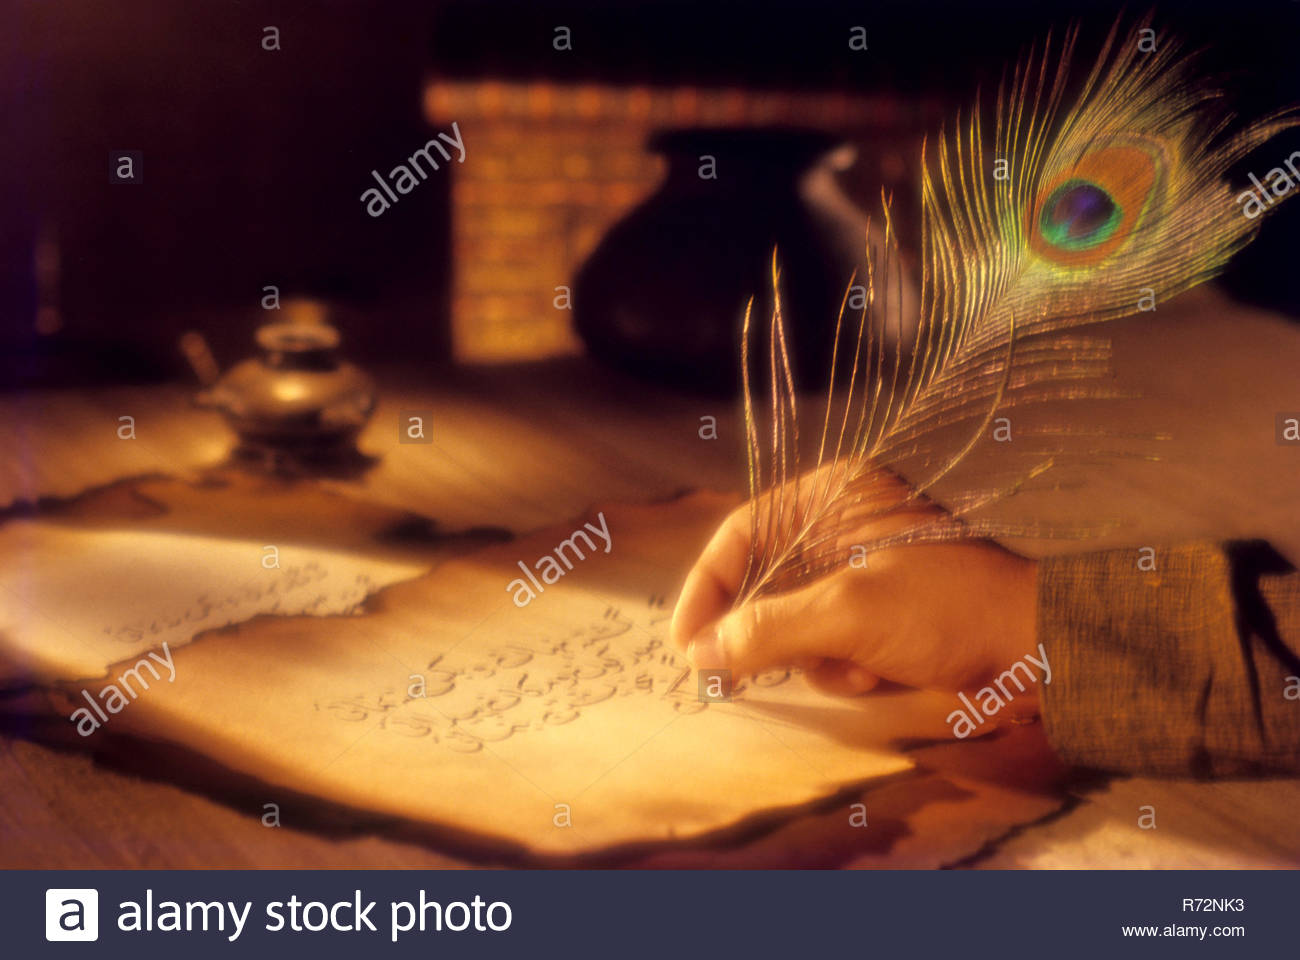 Writing With Peacock Quill, Old-fashioned - Stock Image